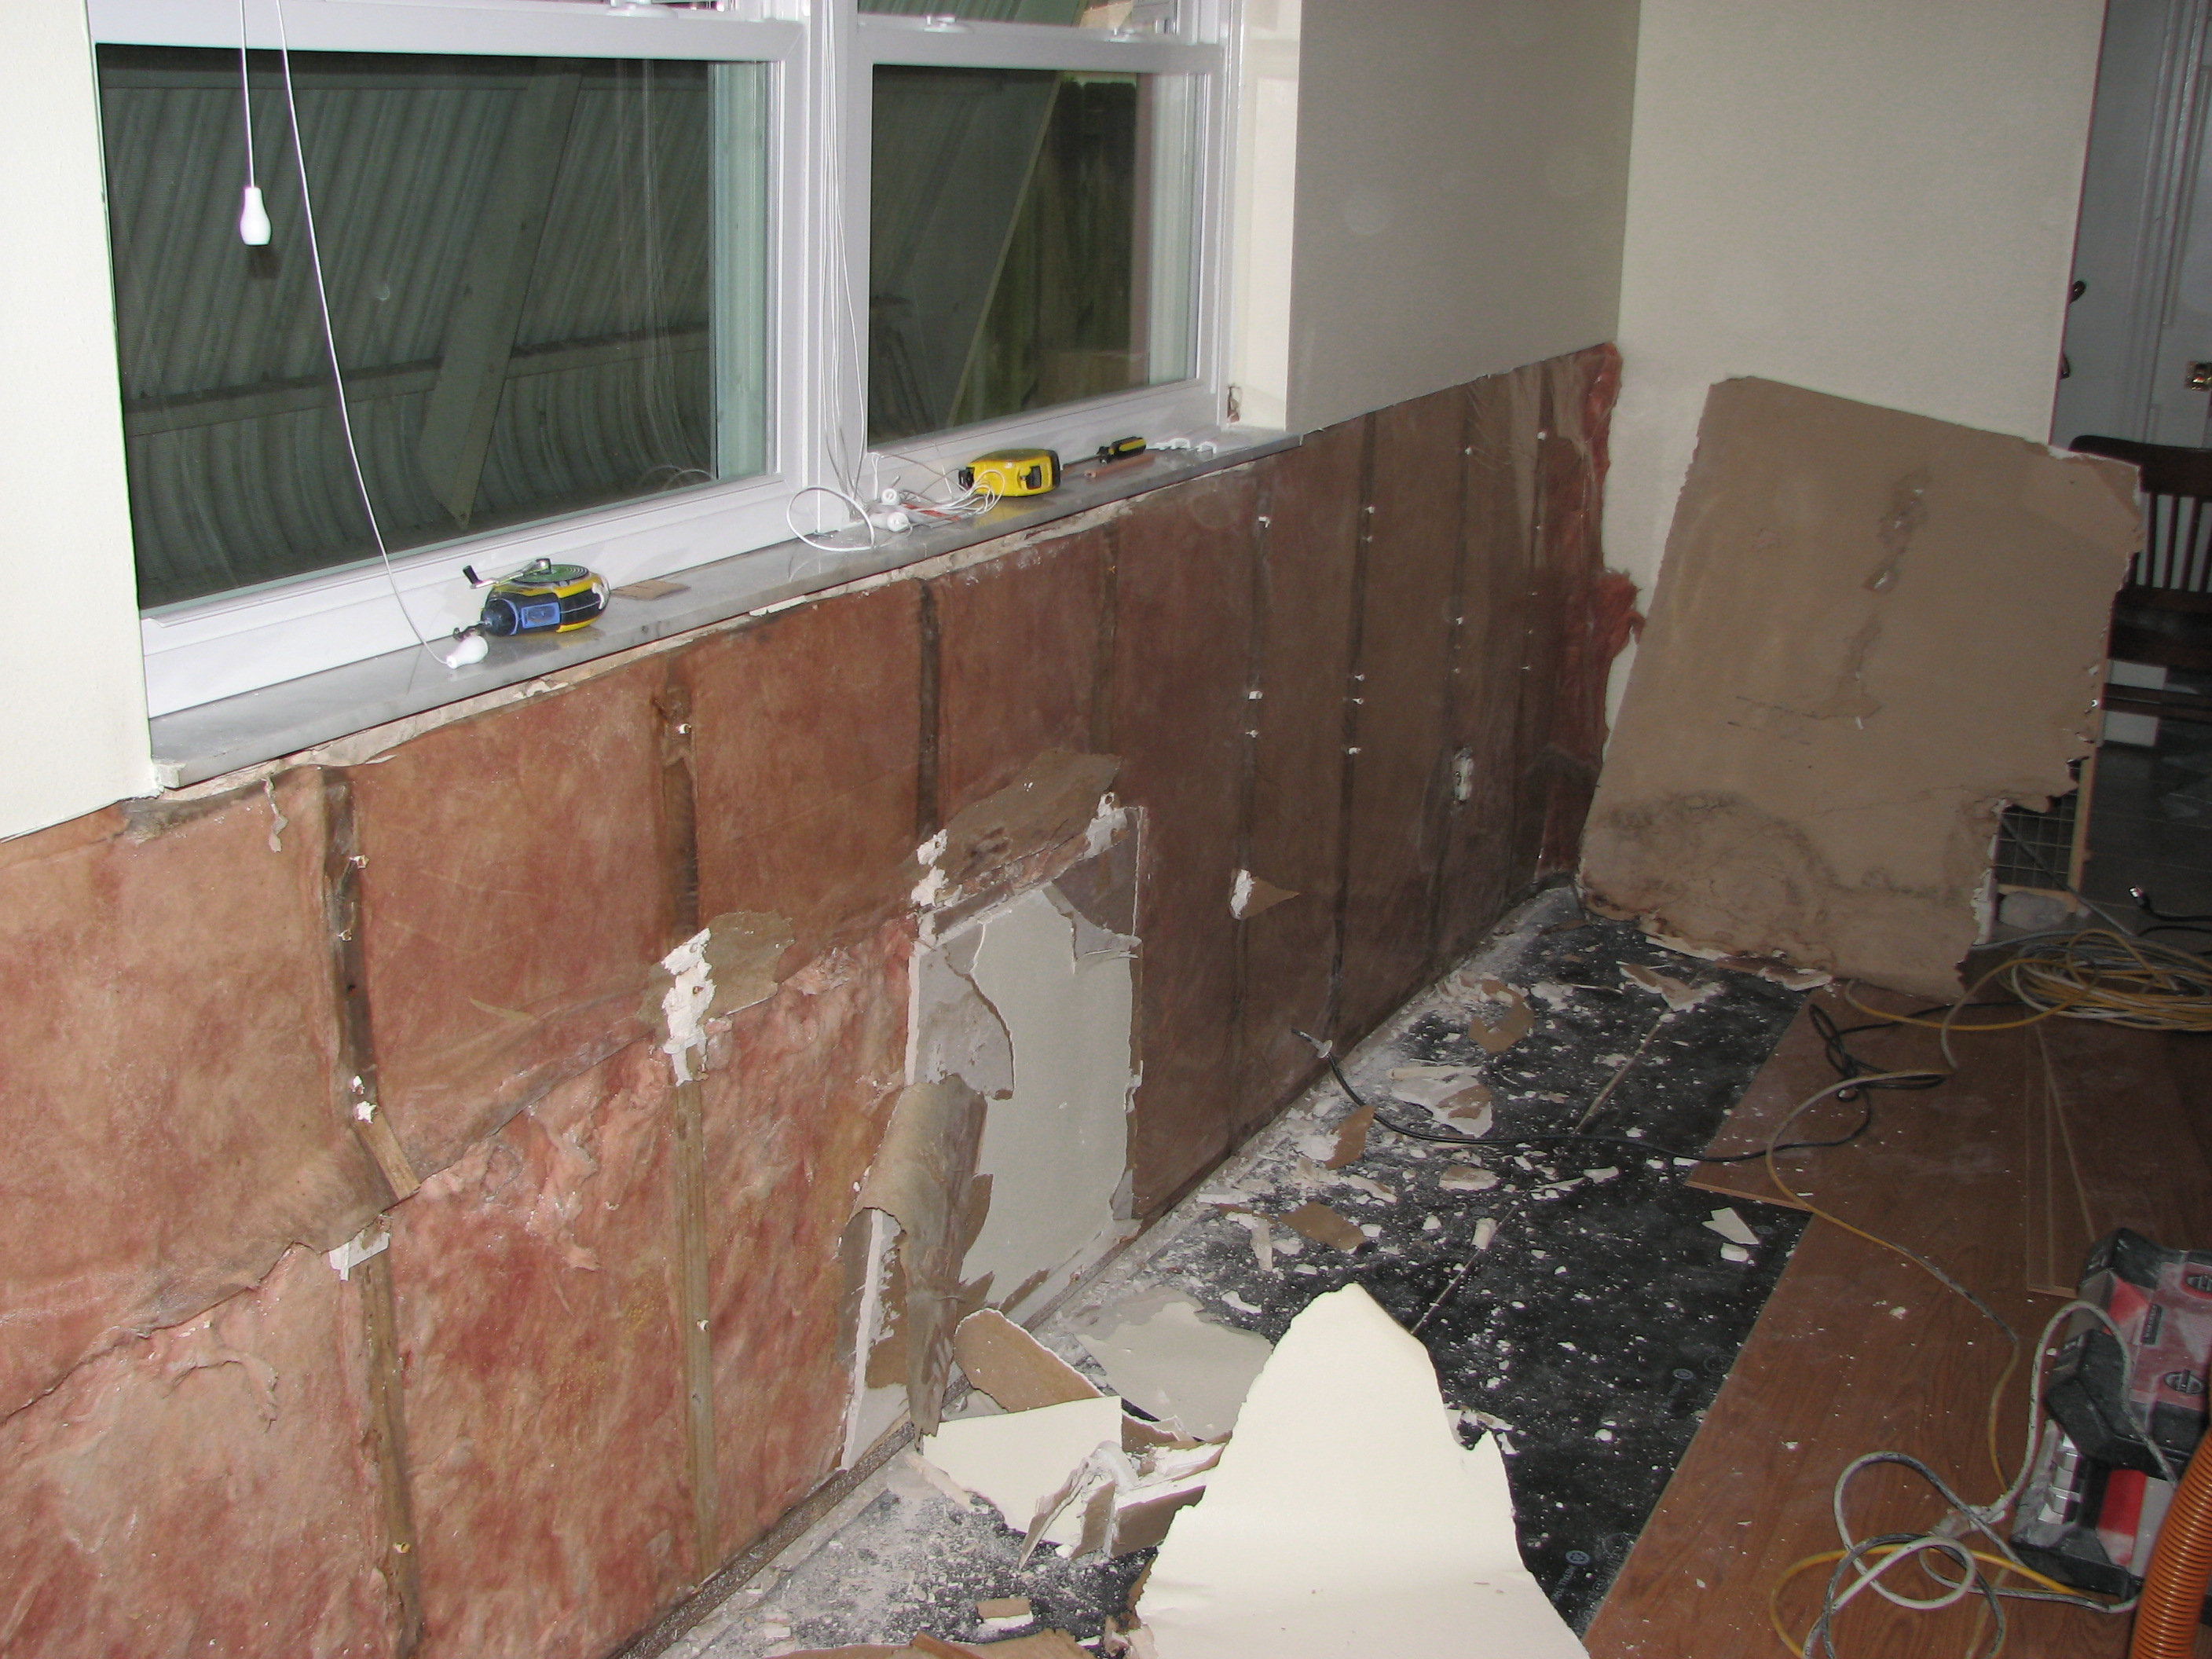 Melbourne Water Damaged Sheetrock Repair